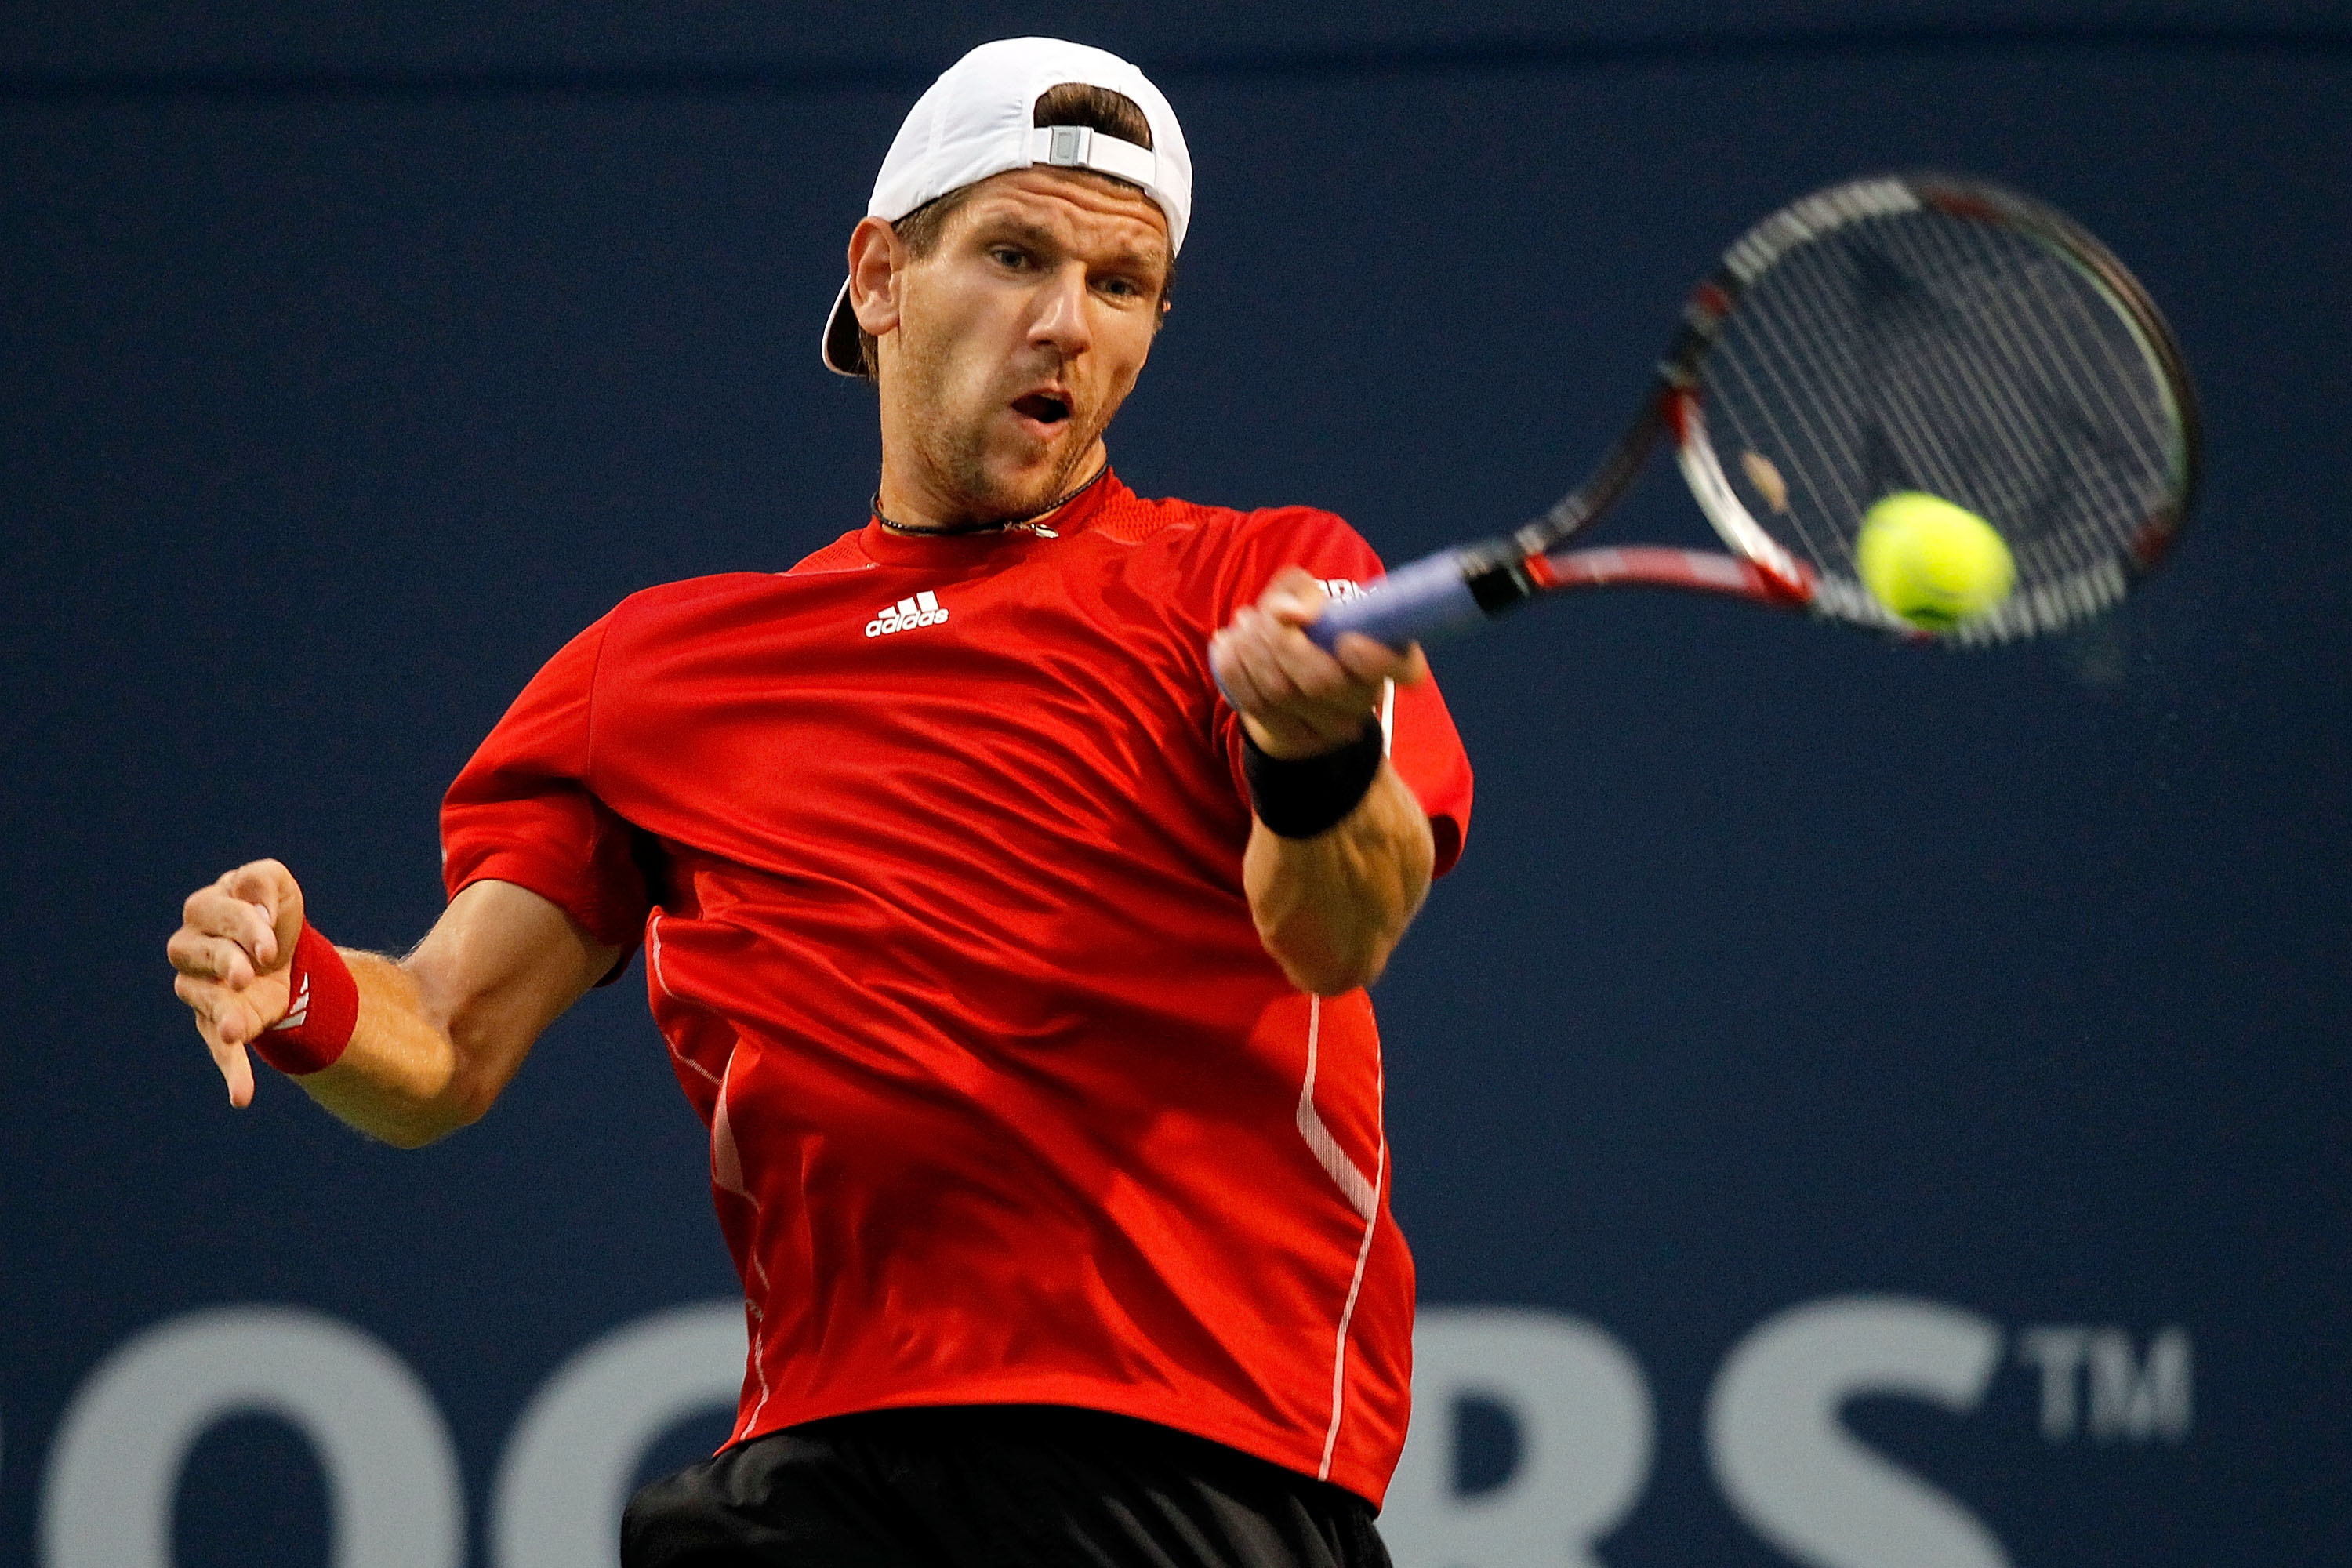 TORONTO, ON - AUGUST 09: Jurgen Melzer of Austria returns a shot to Peter Polansky of Canada during the Rogers Cup at the Rexall Centre on August 9, 2010 in Toronto, Canada.  (Photo by Matthew Stockman/Getty Images)